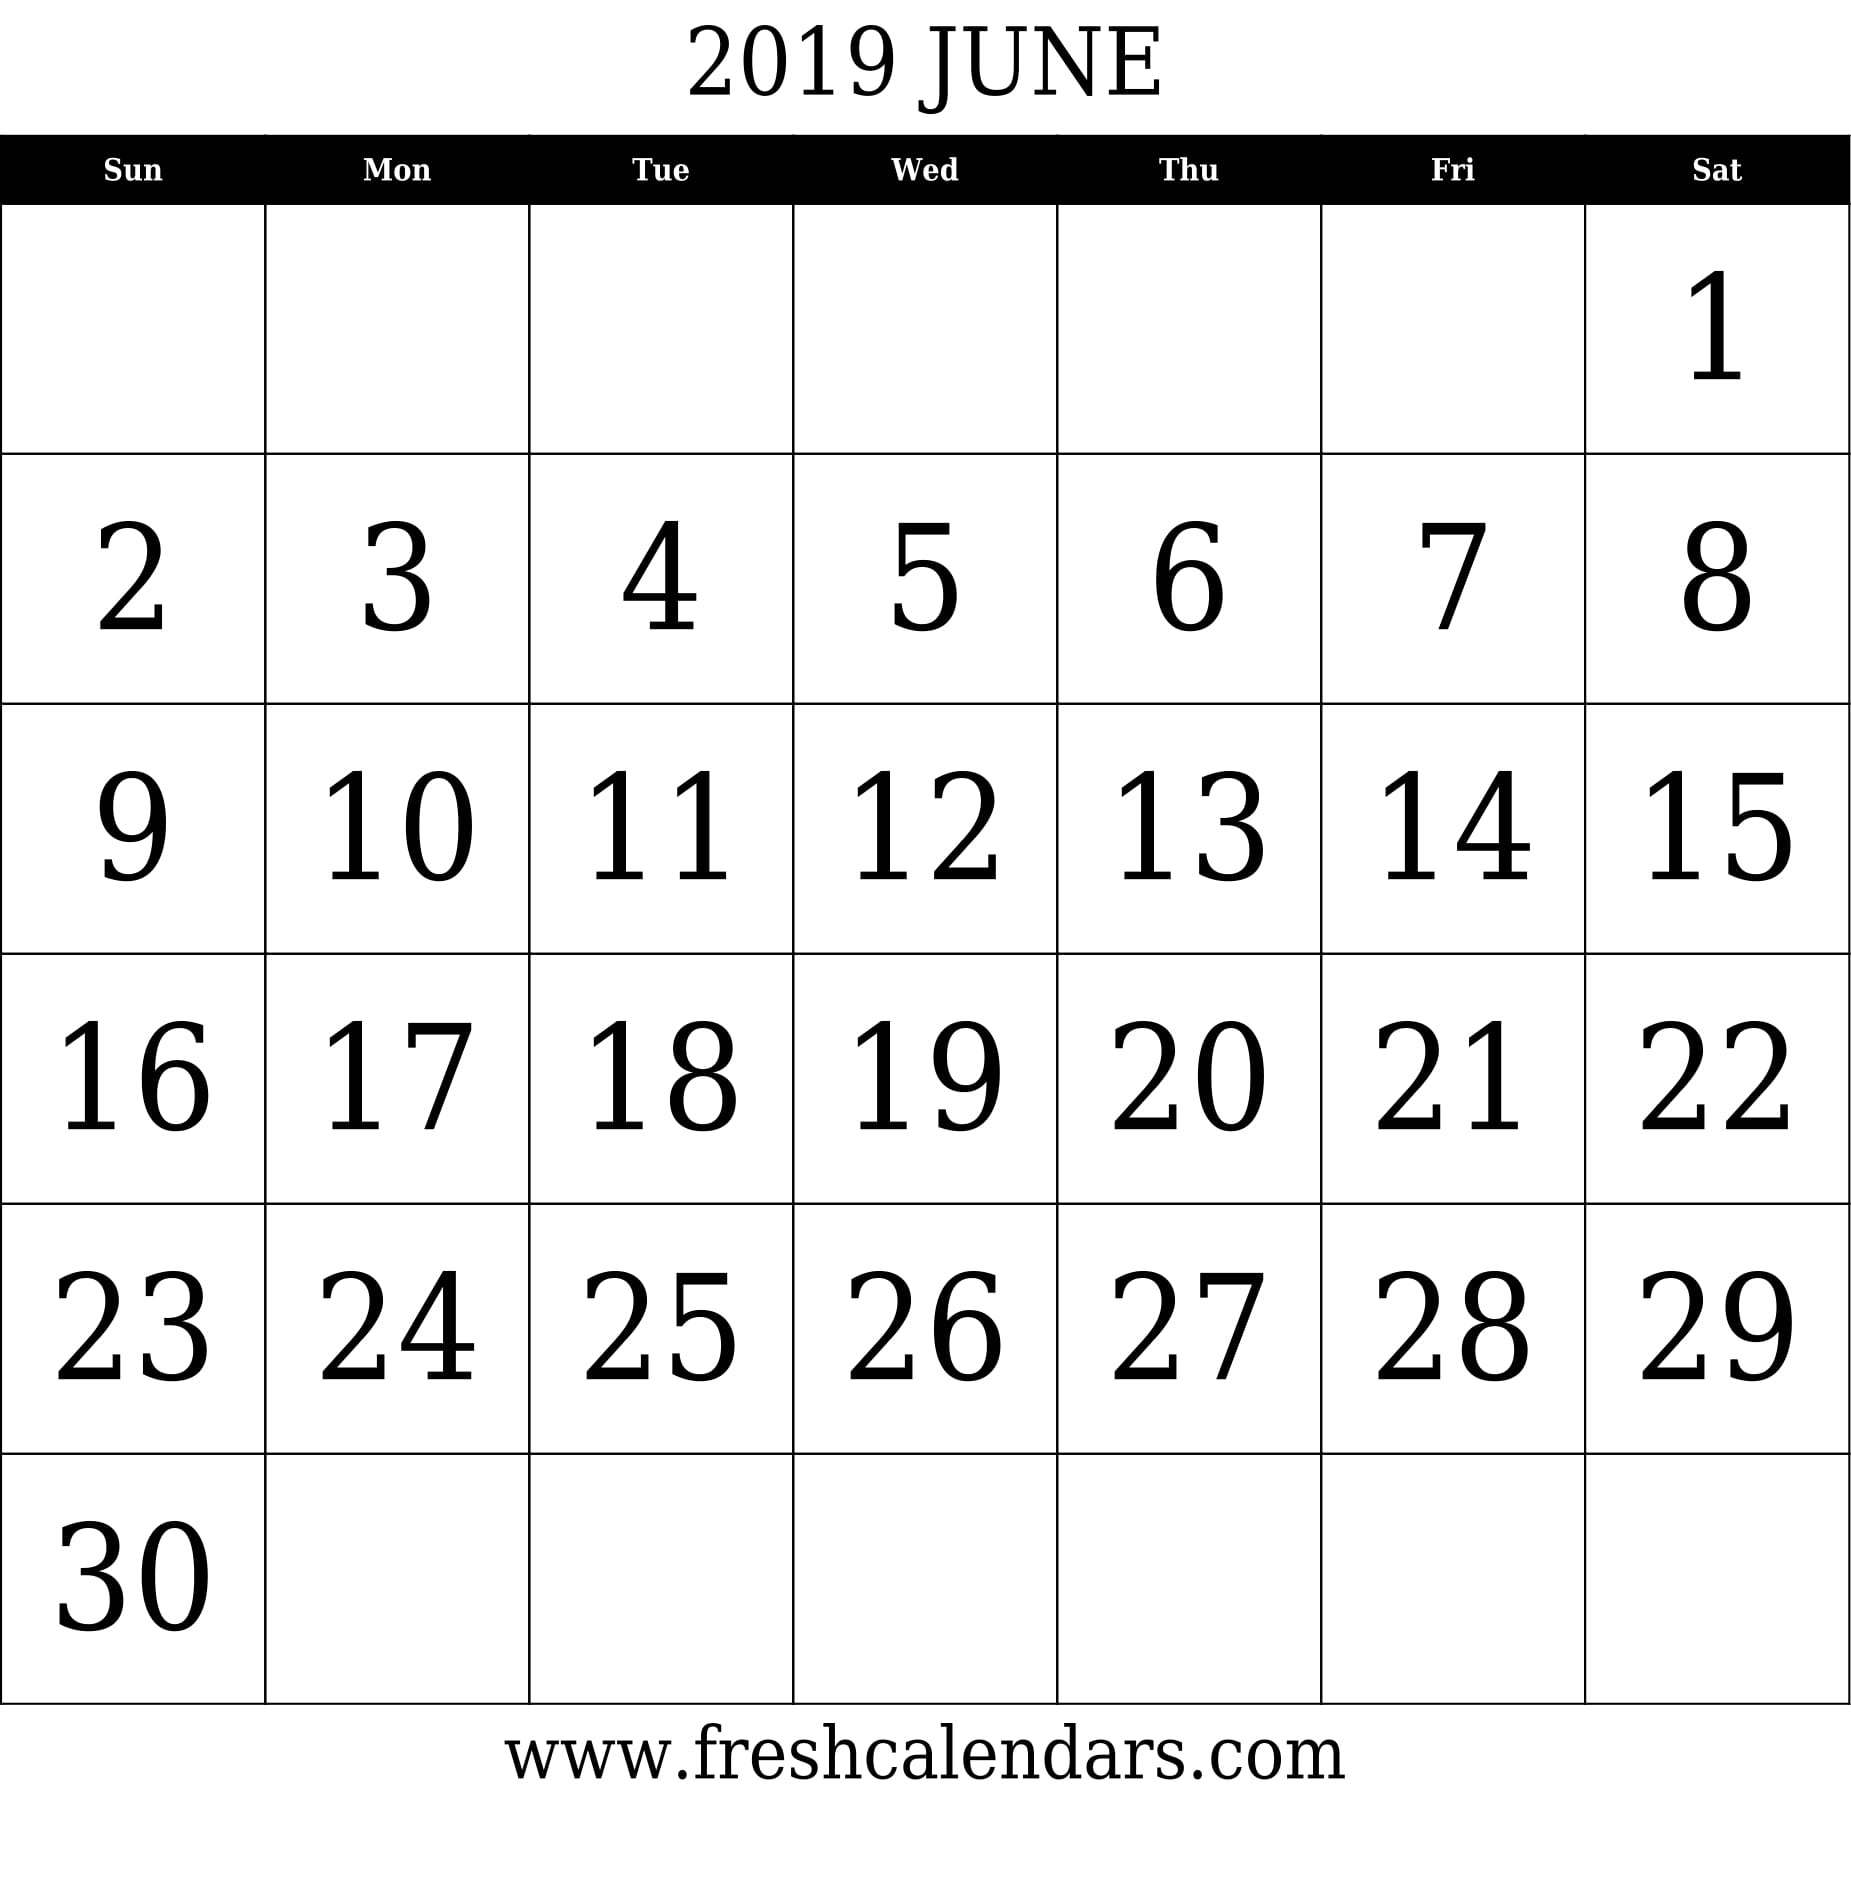 June 2019 Calendar With Large Dates